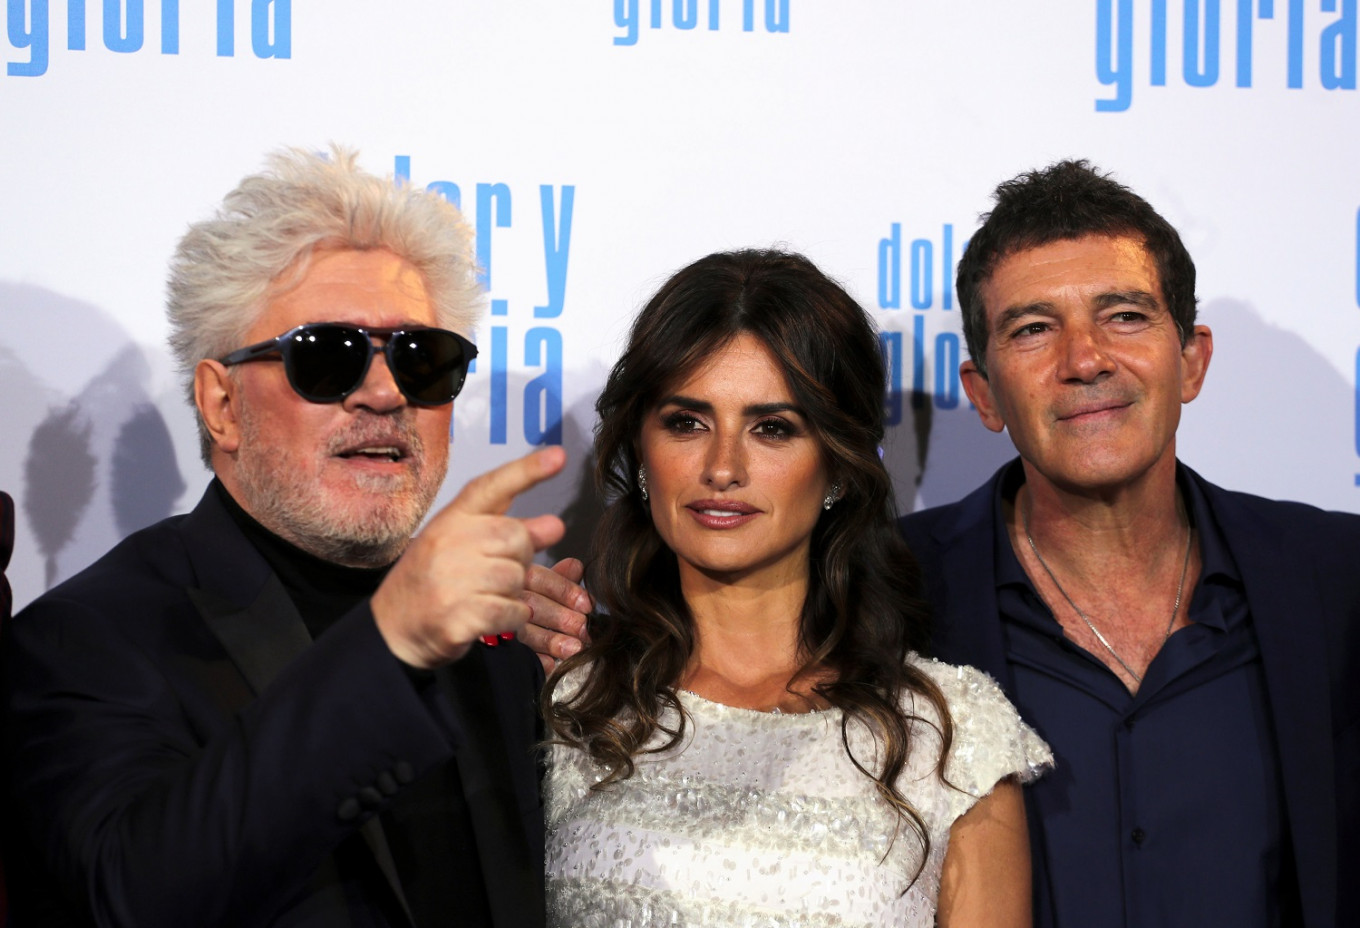 Filmmaker Almodovar walks Cruz, Banderas down memory lane in 'Pain and Glory'